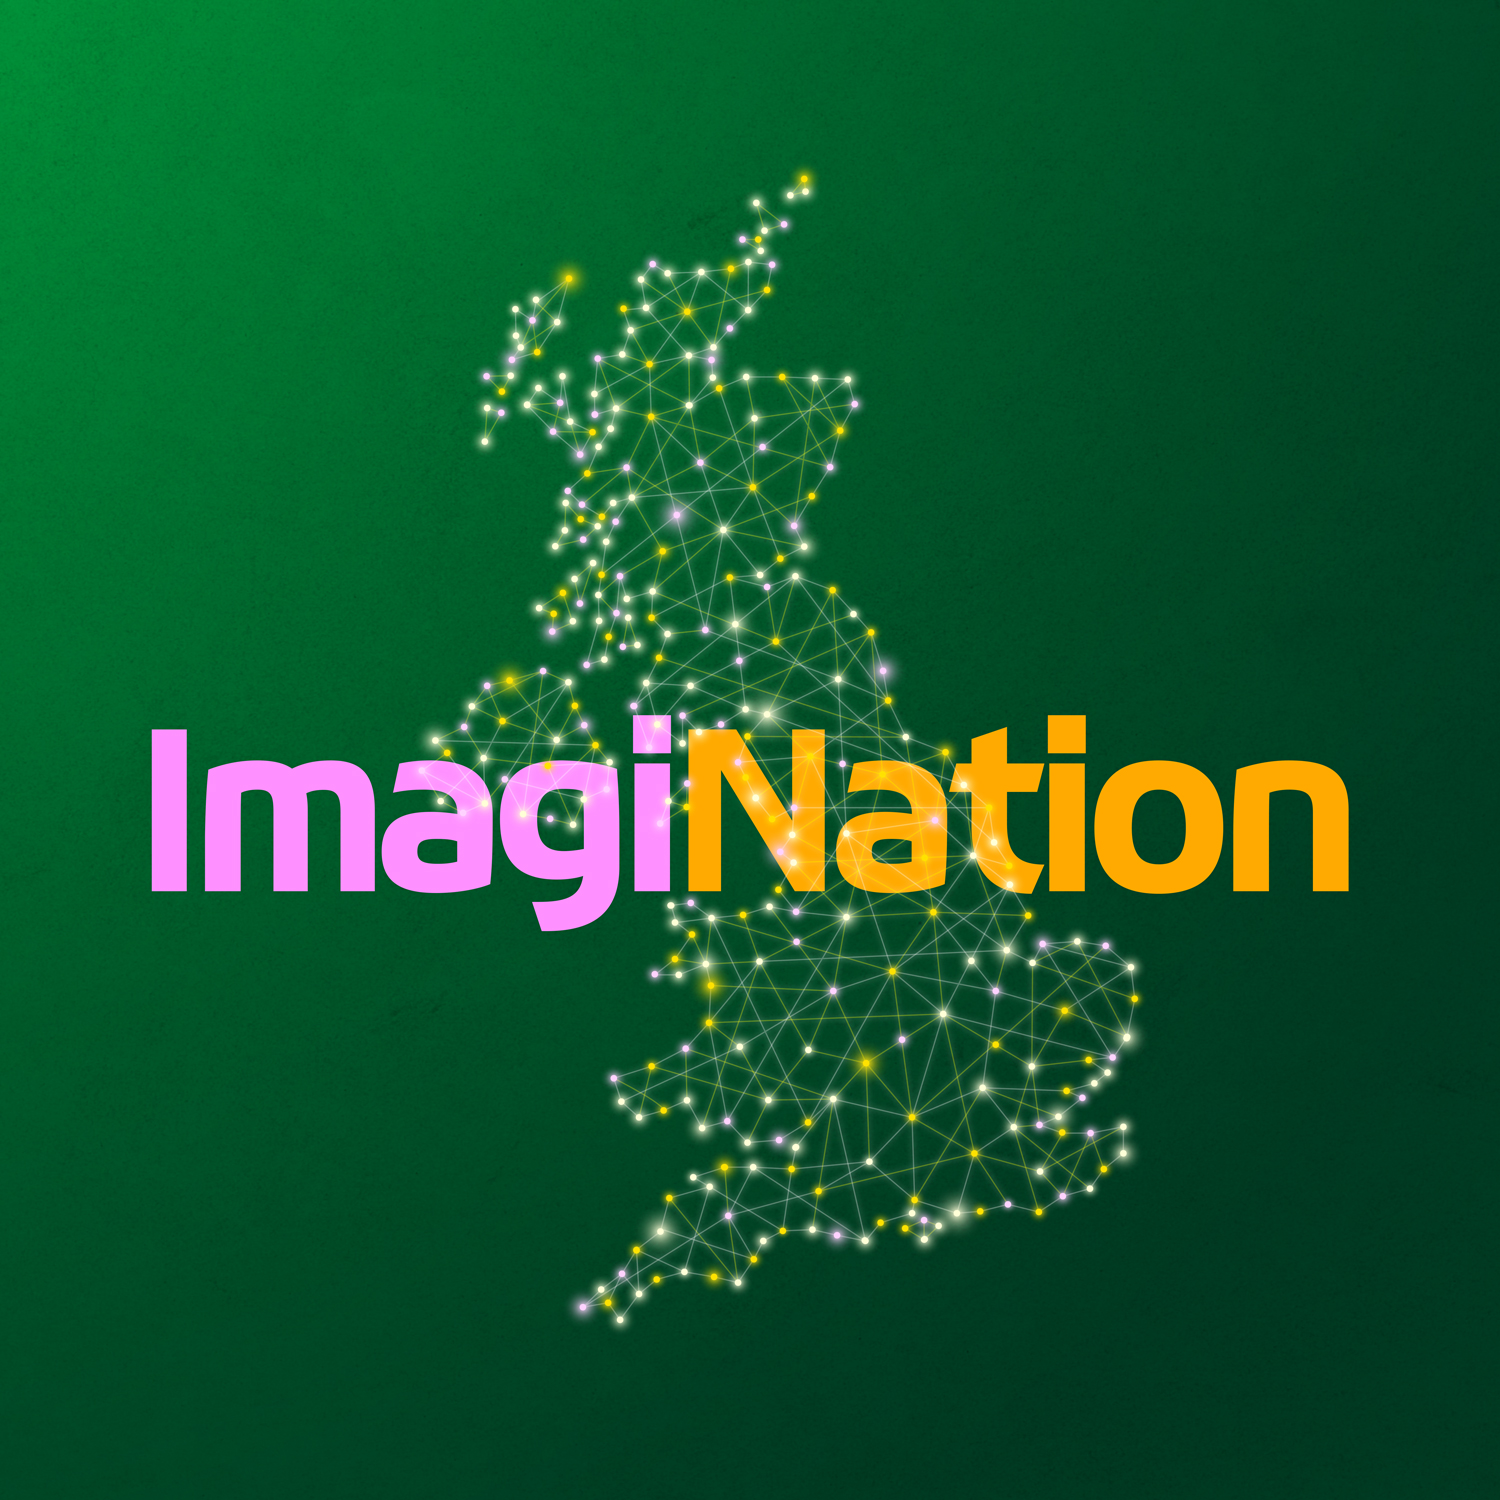 Submit your ImagiNation film by 10 June